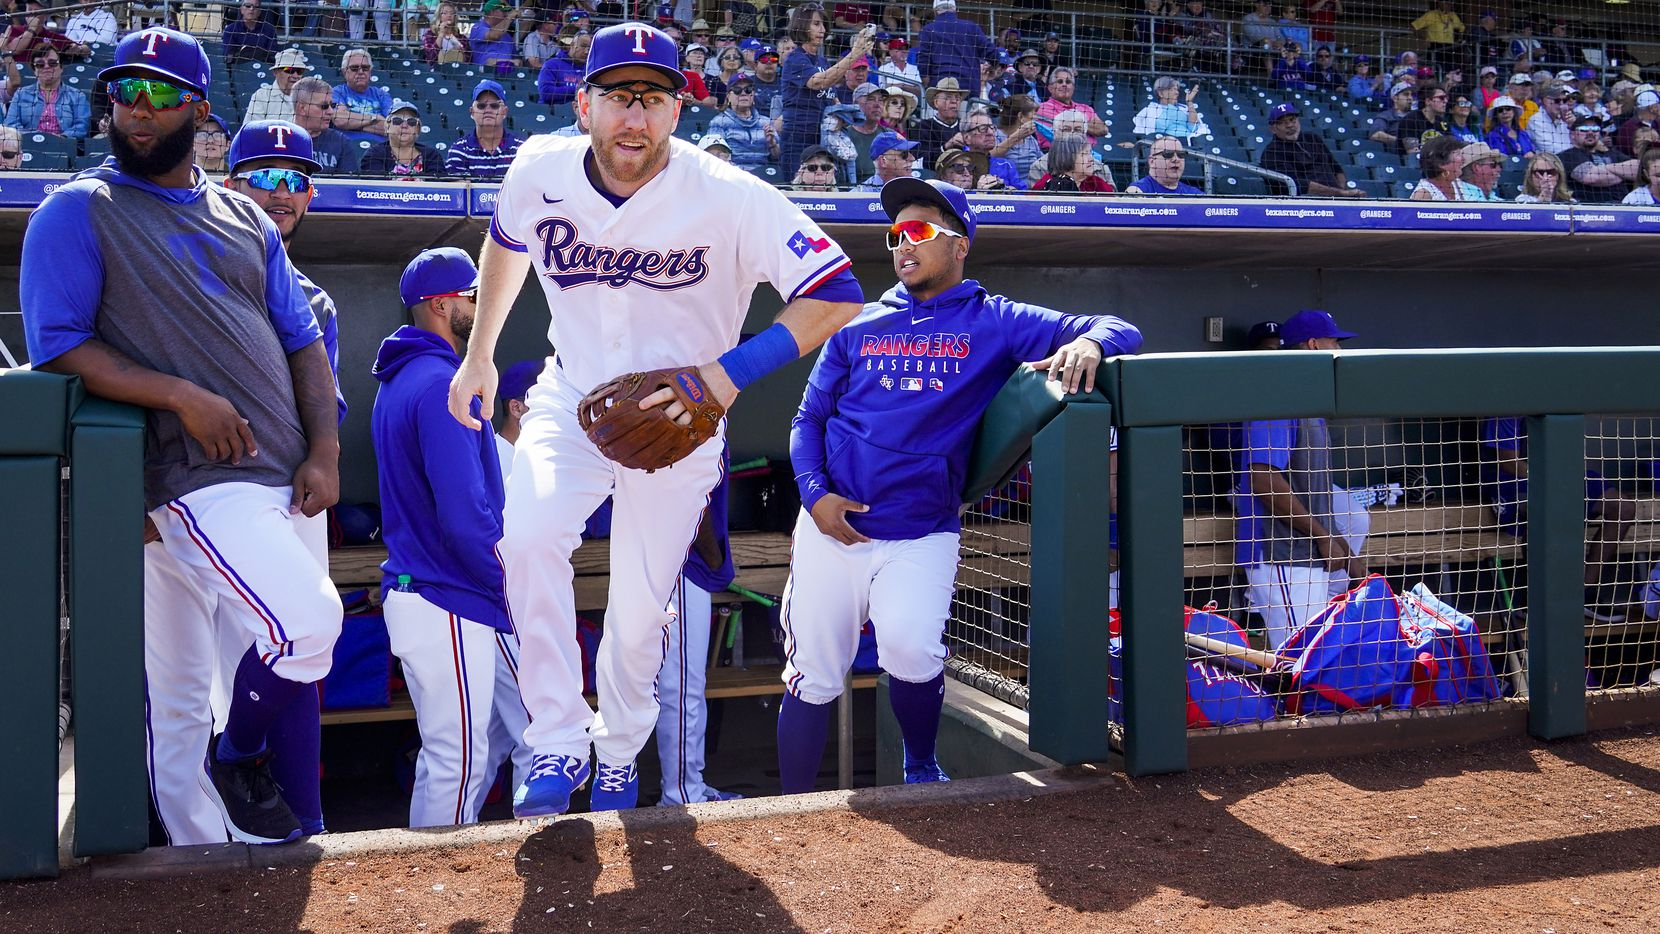 Texas Rangers third baseman Todd Frazier takes the field for a spring training game against the Chicago Cubs at Surprise Stadium on Thursday, Feb. 27, 2020, in Surprise, Ariz.